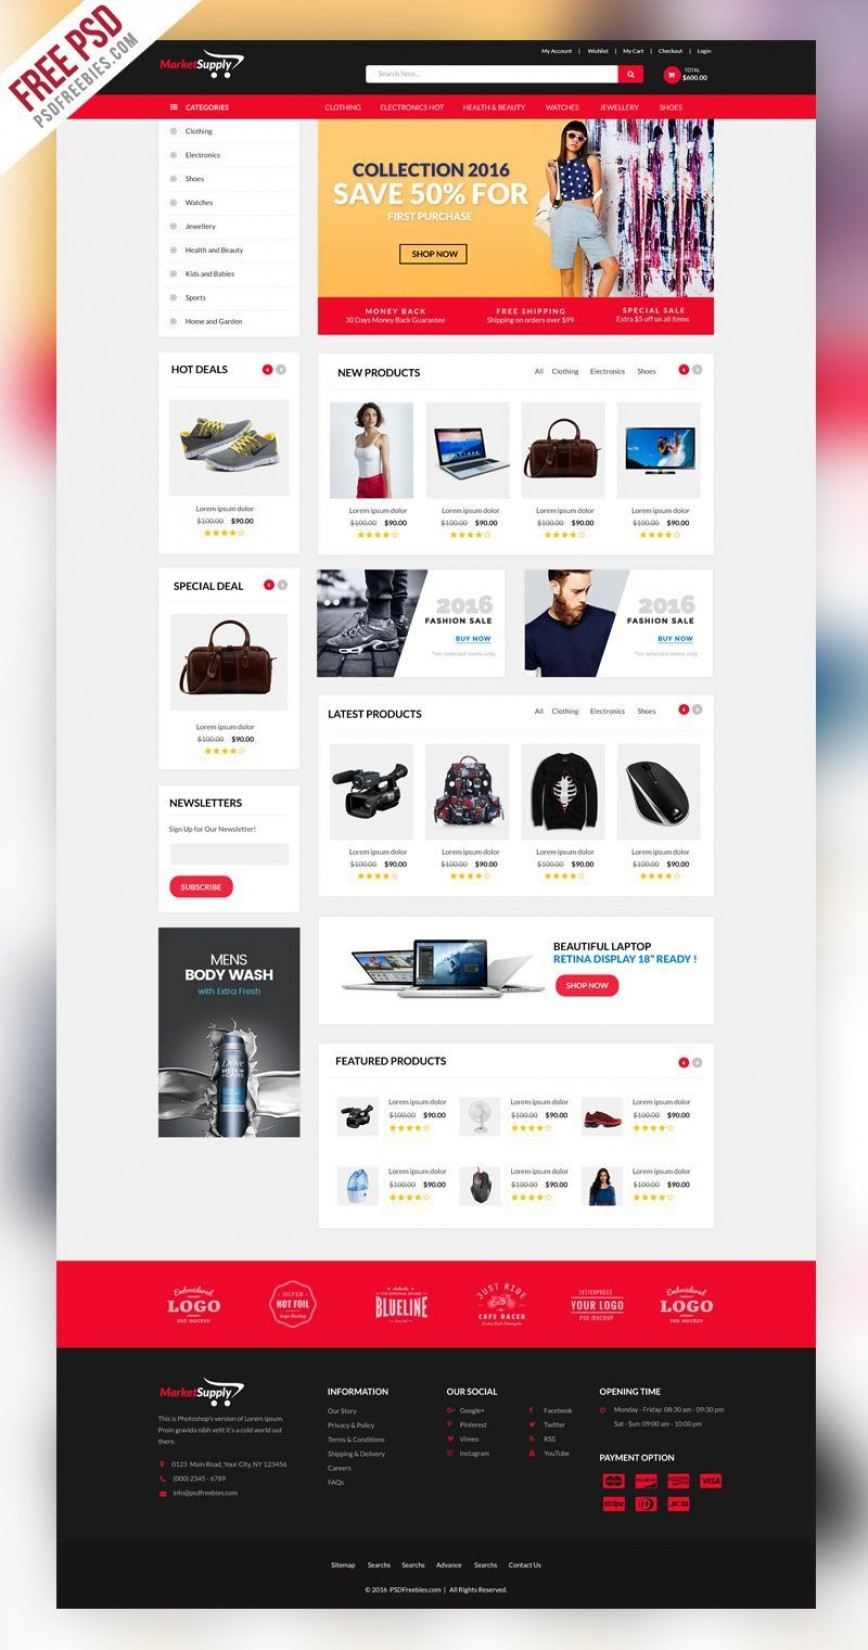 006 Amazing Ecommerce Website Template Html Free Download Design  Bootstrap 4 Responsive With Cs Jquery868